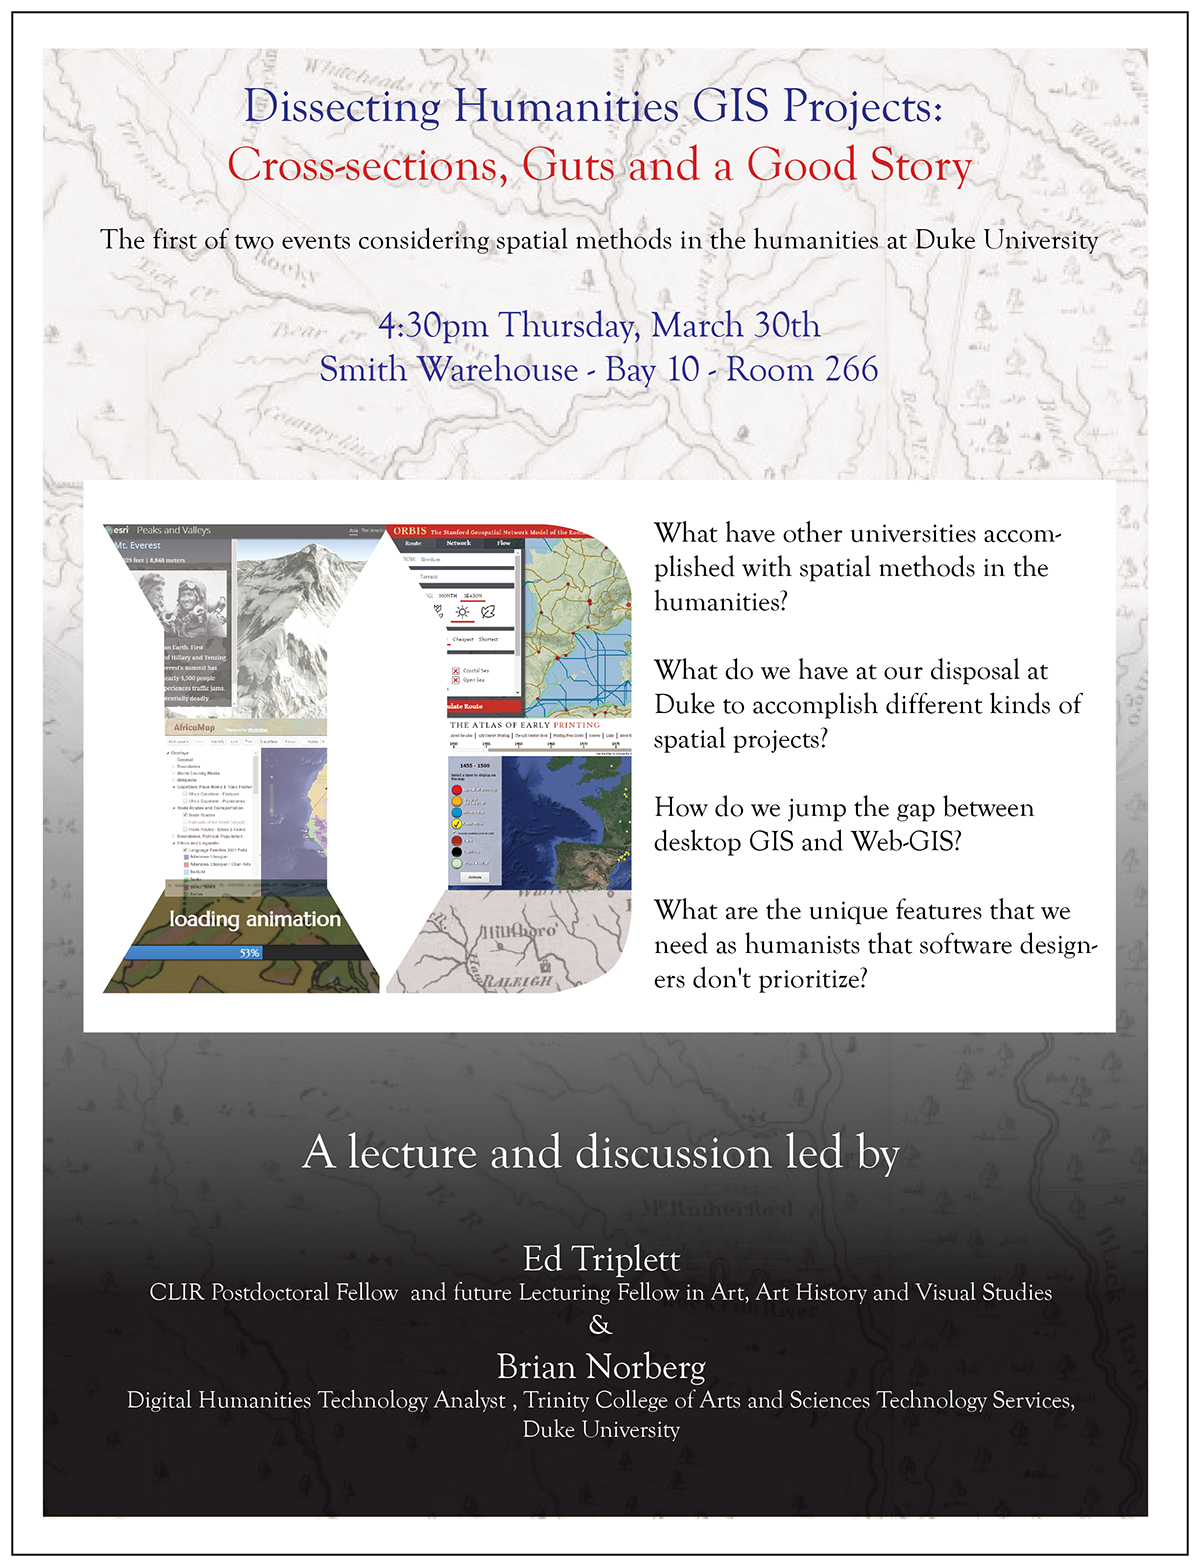 Humanities GIS/Digital Mapping Events Coming Up | Duke Information ...